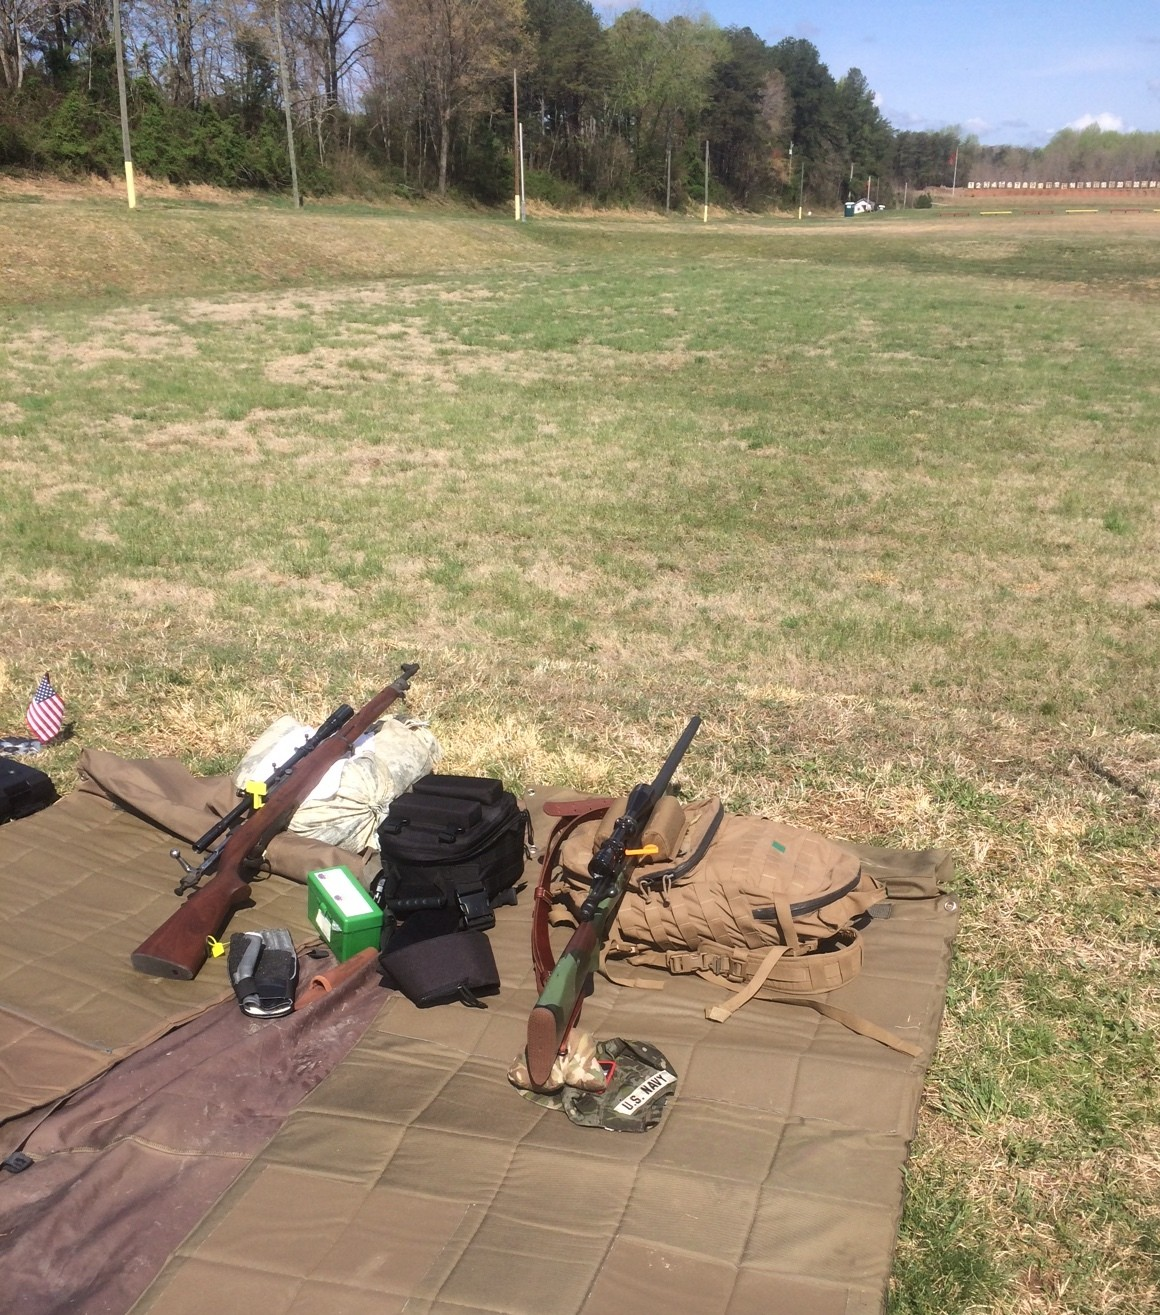 I used my M1903A1 on the left, my shooting partner used his M40A1ish rifle. We both did pretty well on Saturdday